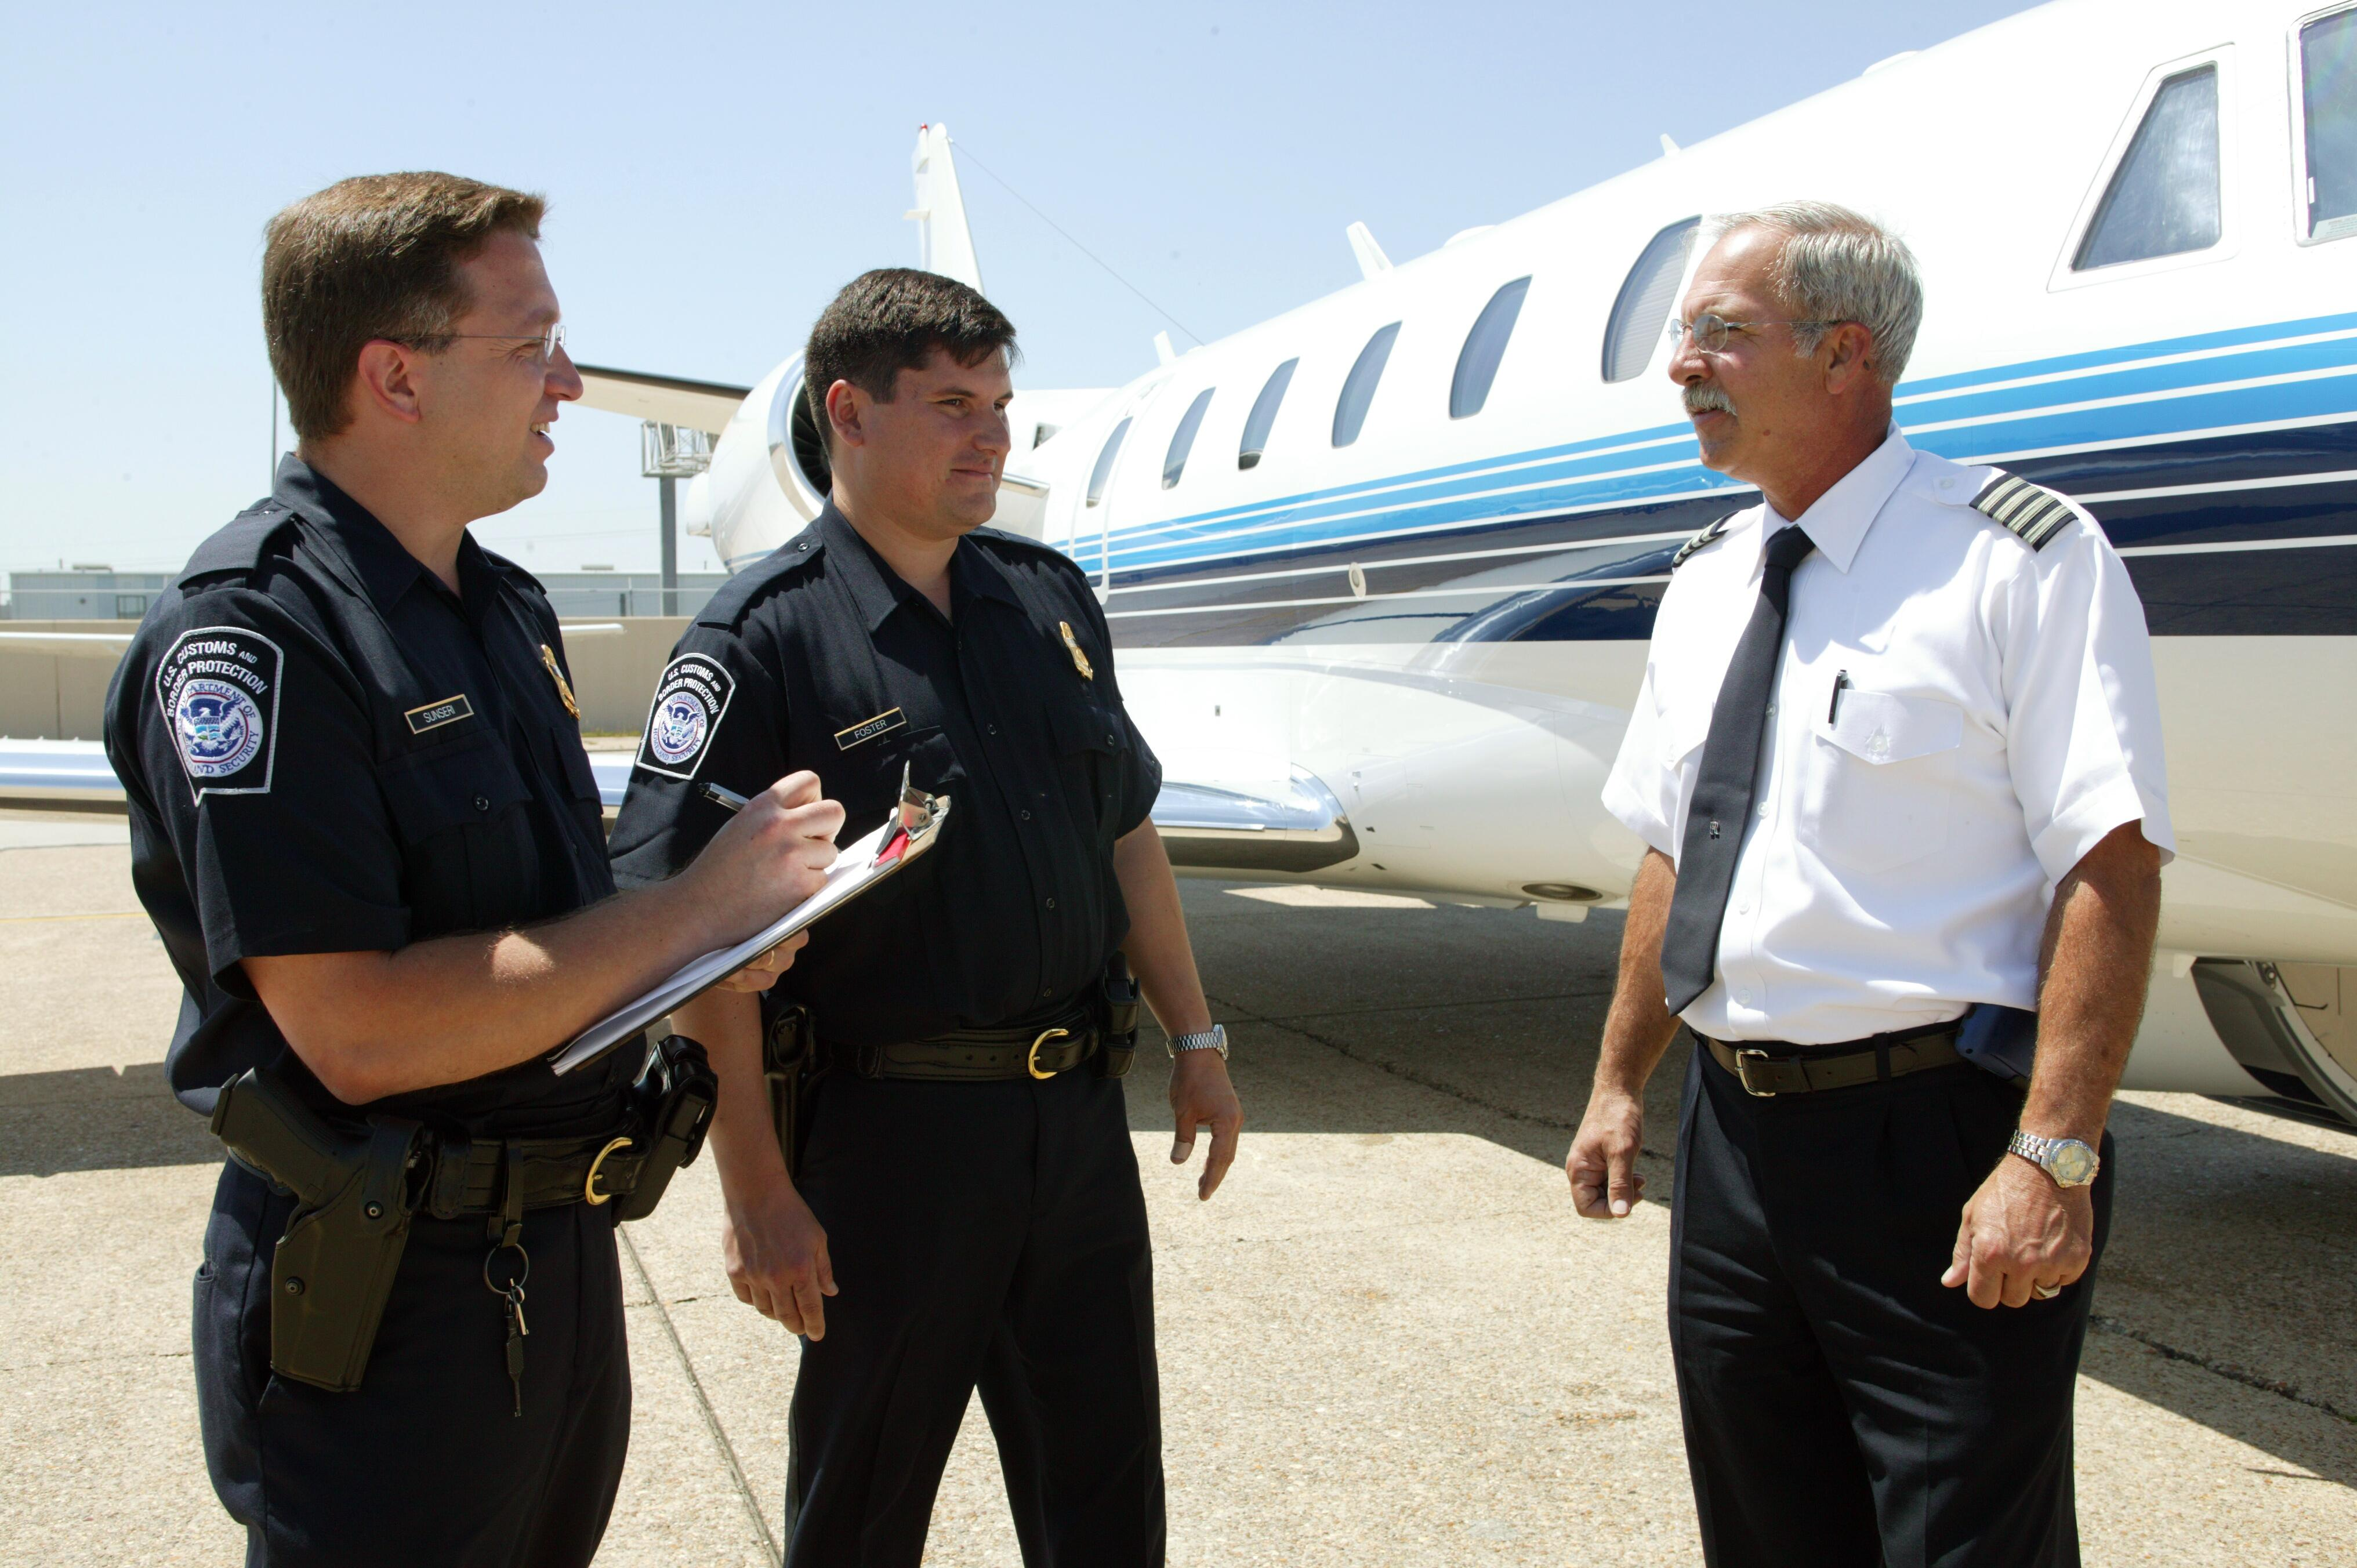 CBP Officers conduct a routine interview with the pilot of a small commercial aircraft after a flight.